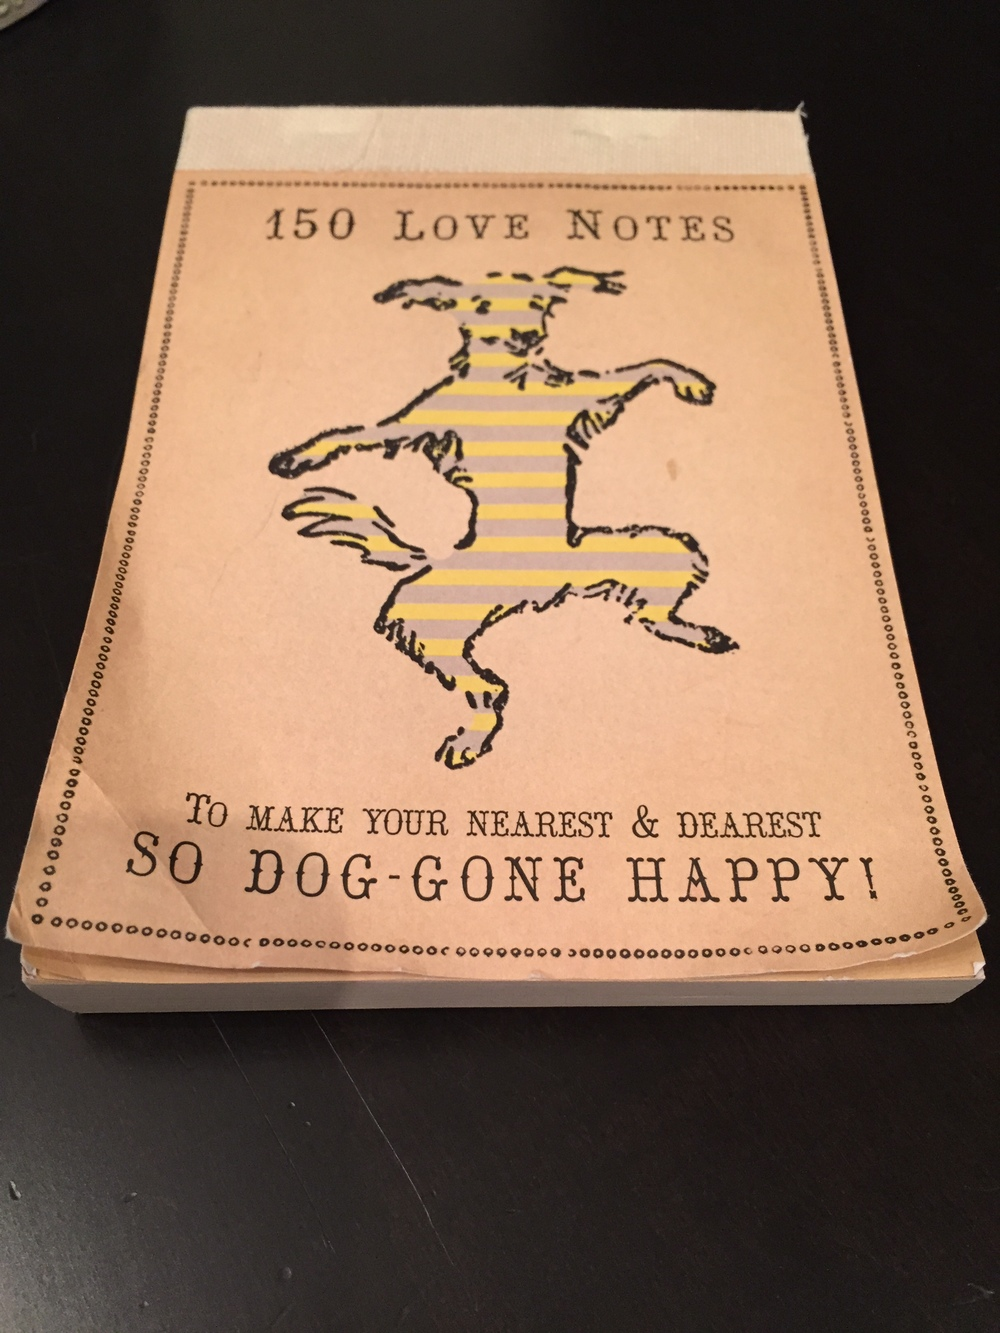 Looking forward to sharing these 150 Love Notes by Sugarboo Designs purchased at Papersource with my son who can read!!!  I need to find some fun way to leave him my notes so he can find in the mornings or before bedtime.